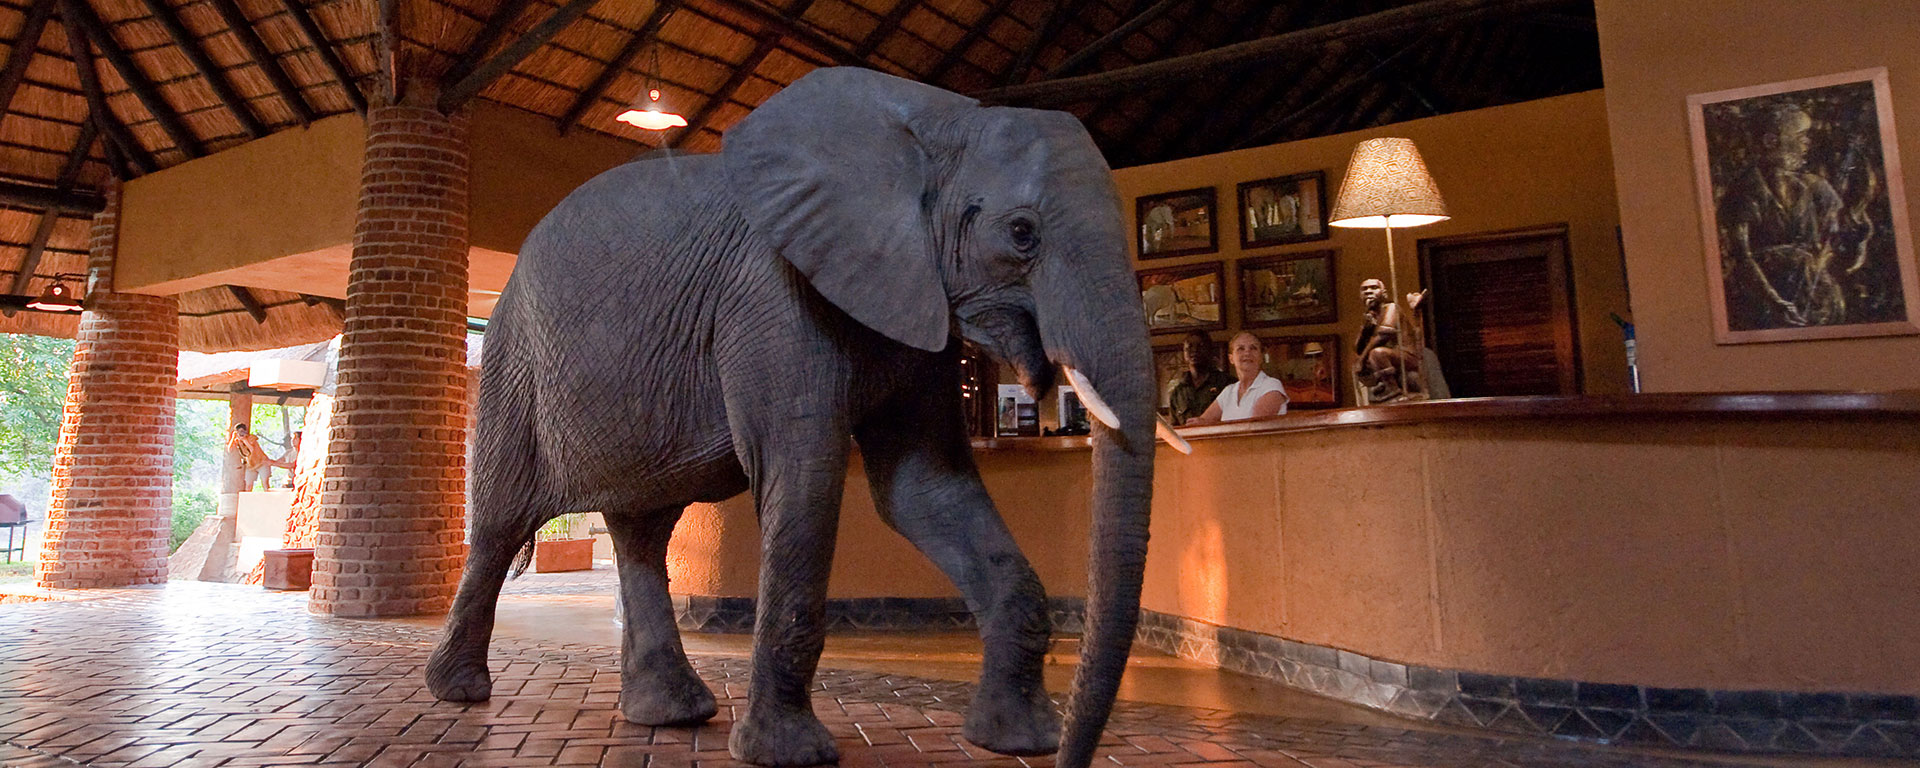 The elephants walk through reception at Mfuwe Lodge on their annual pilgrimage to eat the spring fruit of the wild mango tree.